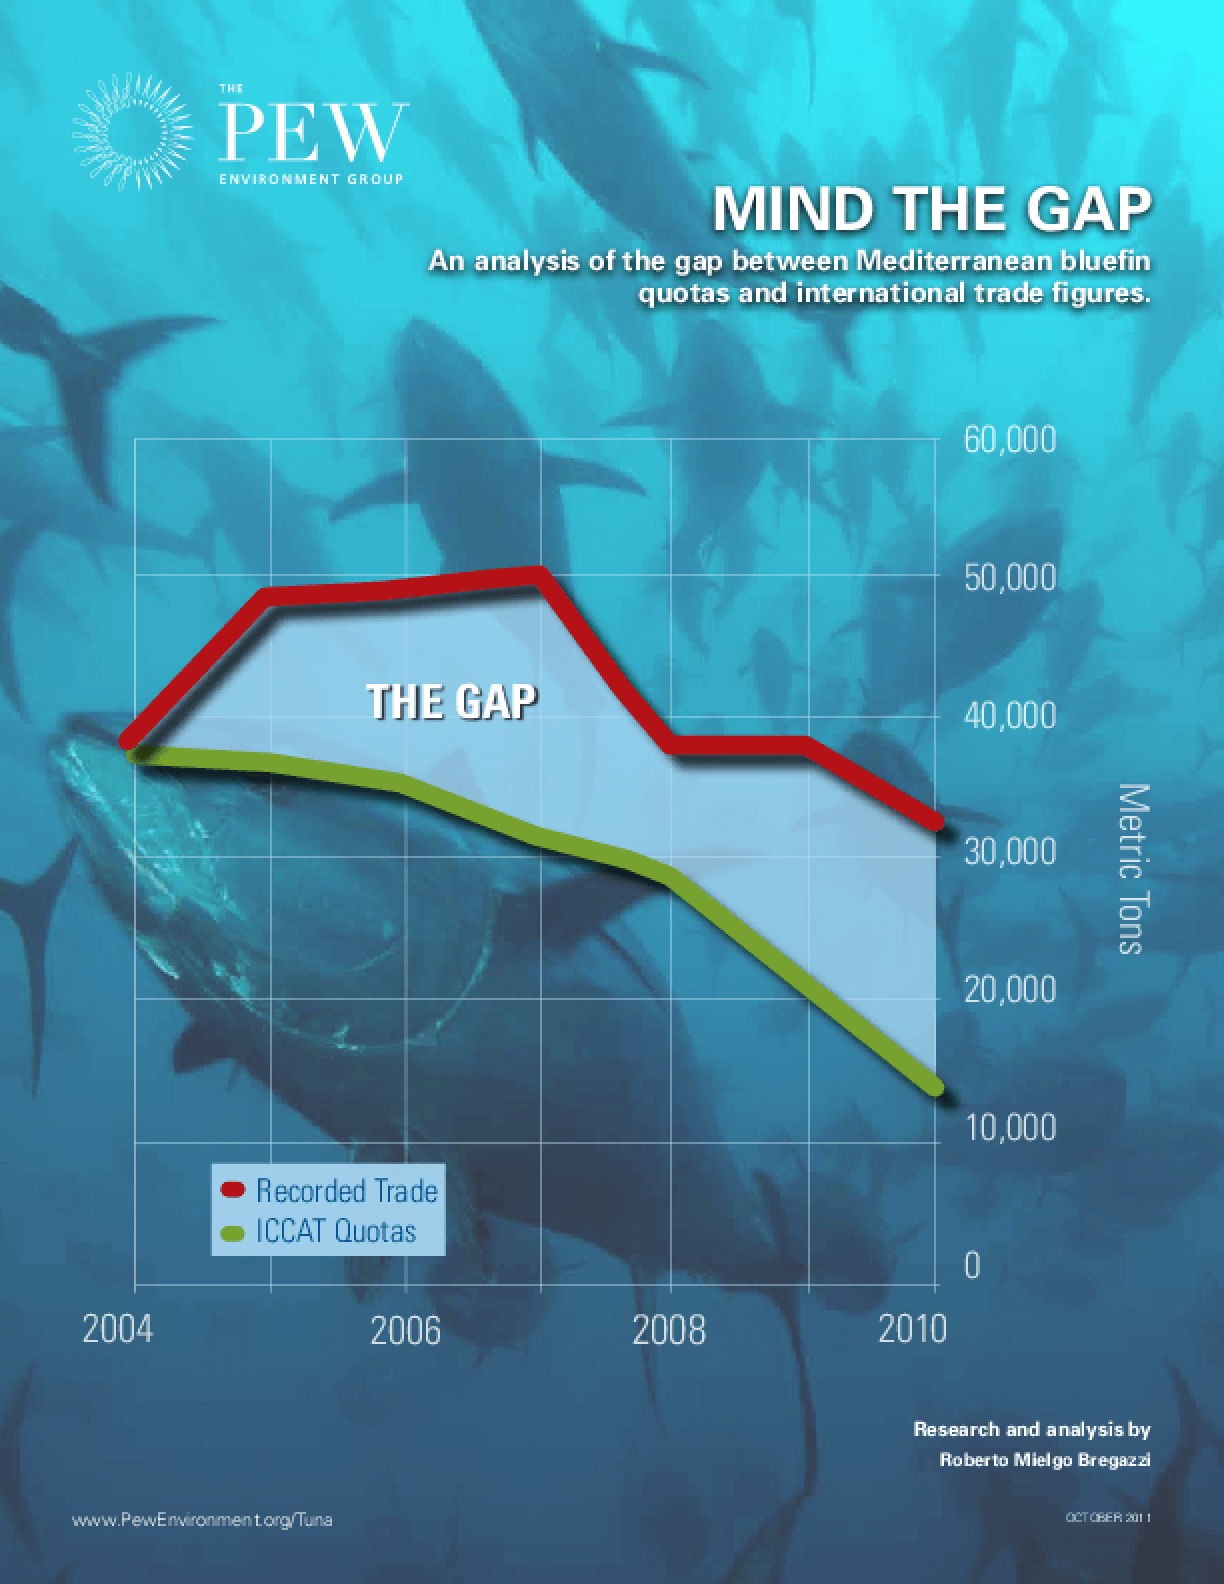 Mind the Gap: An Analysis of the Mediterranean Bluefin Trade